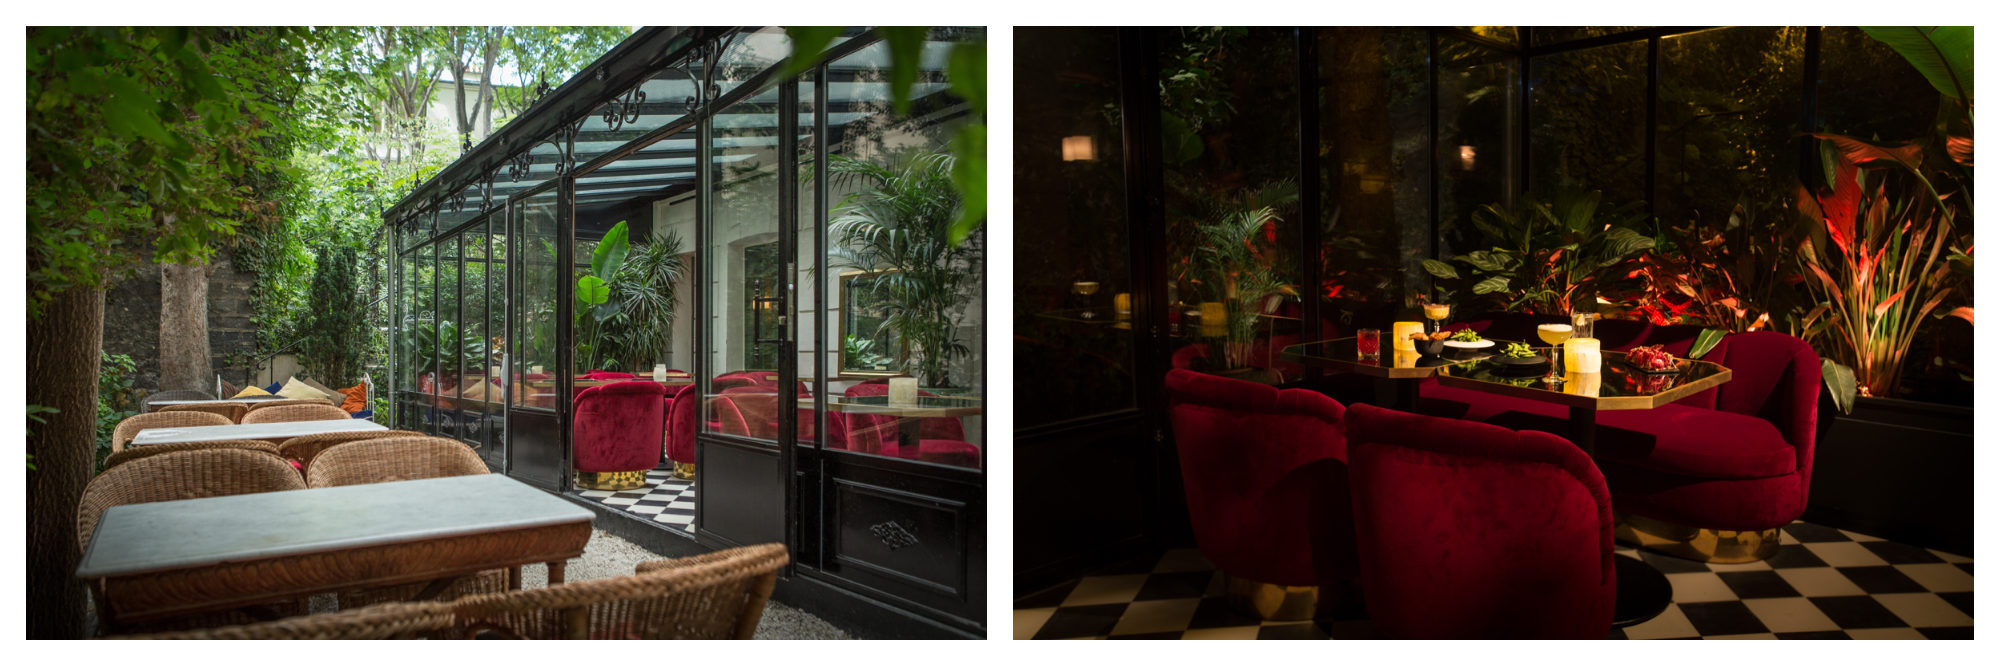 The conservatory at the Très Particulier bar and restaurant in Montmartre in Paris.